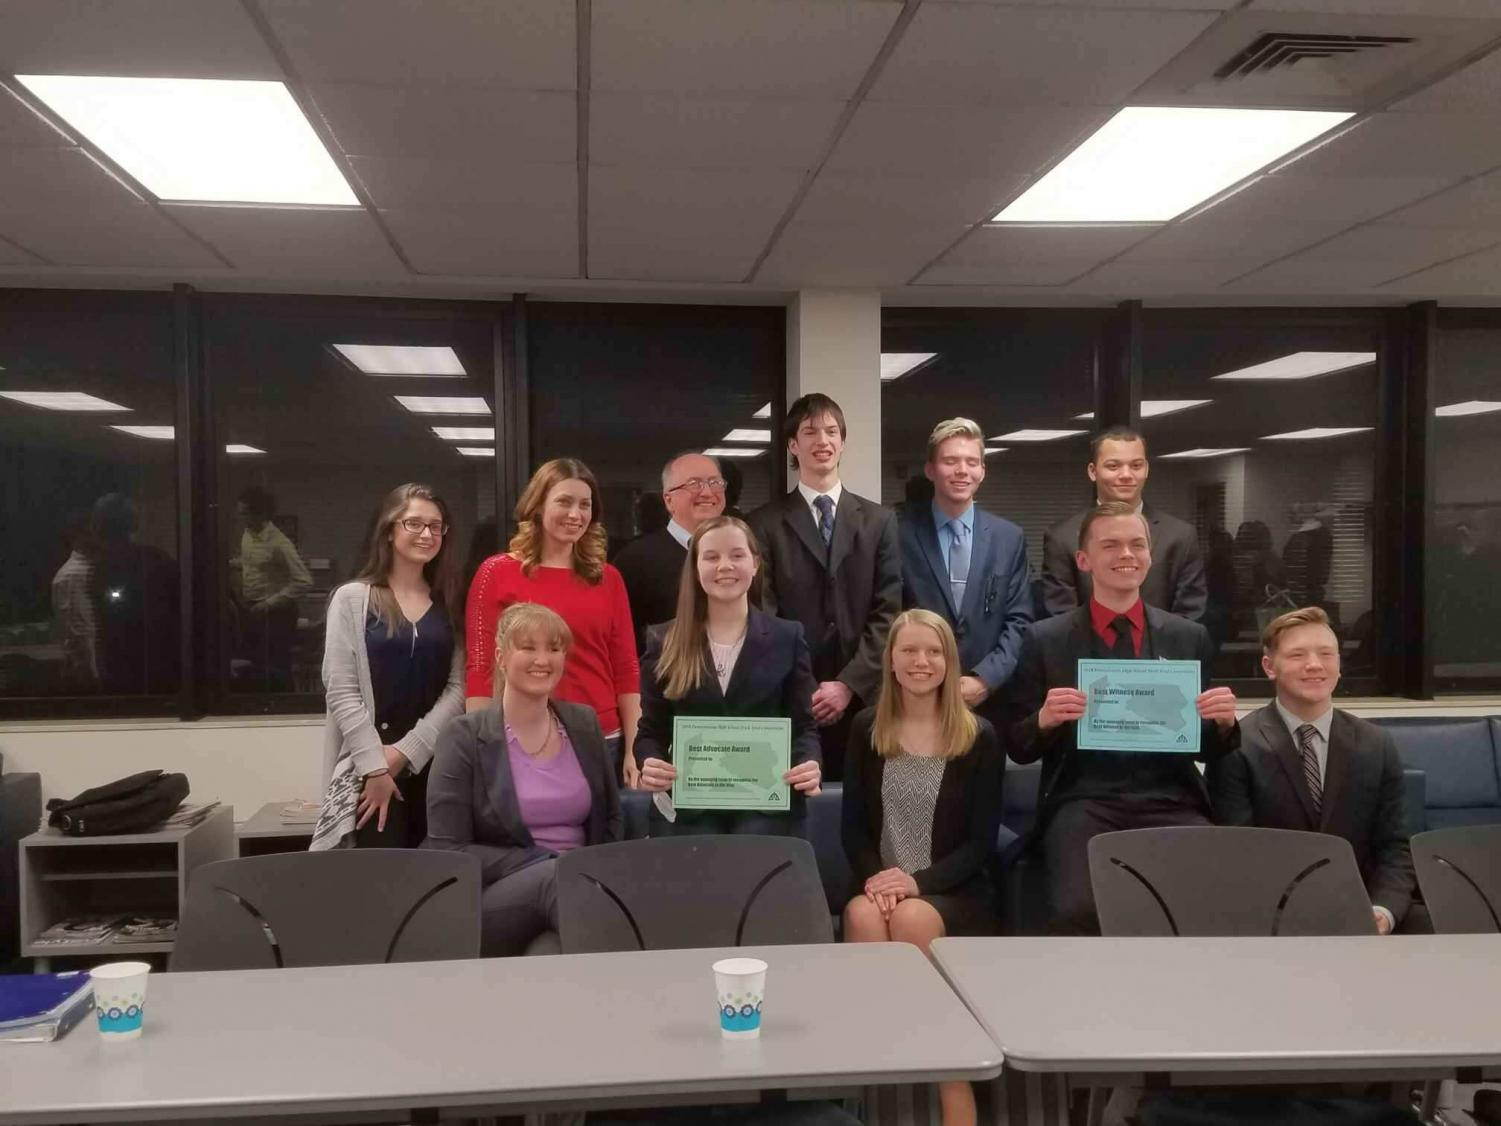 The New Brighton mock trial team stands together for a photo after the regional competition.